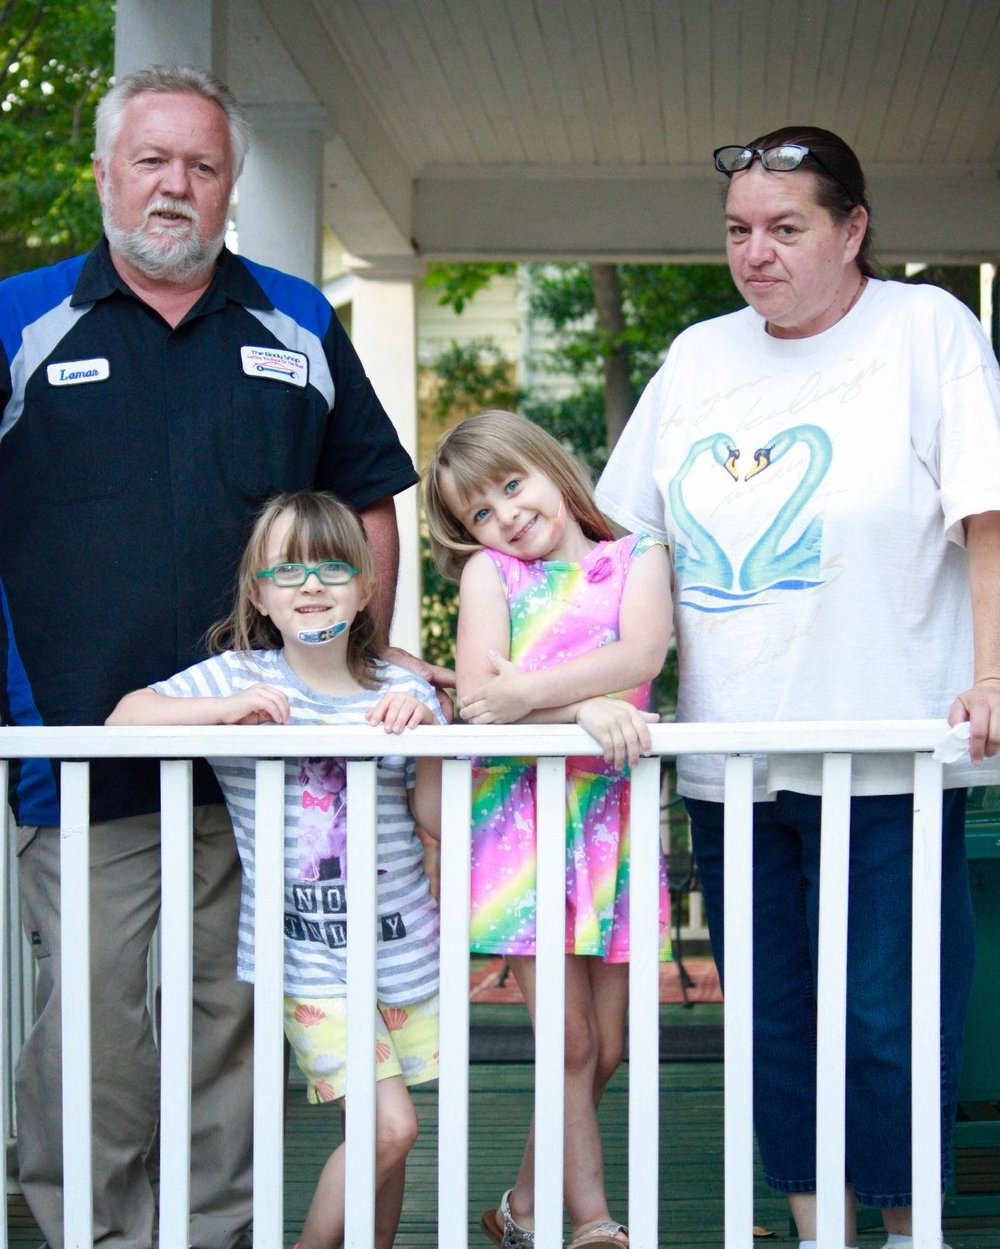 The Proctors were one of several families to participate in Children's Place's Strengthening Families program.